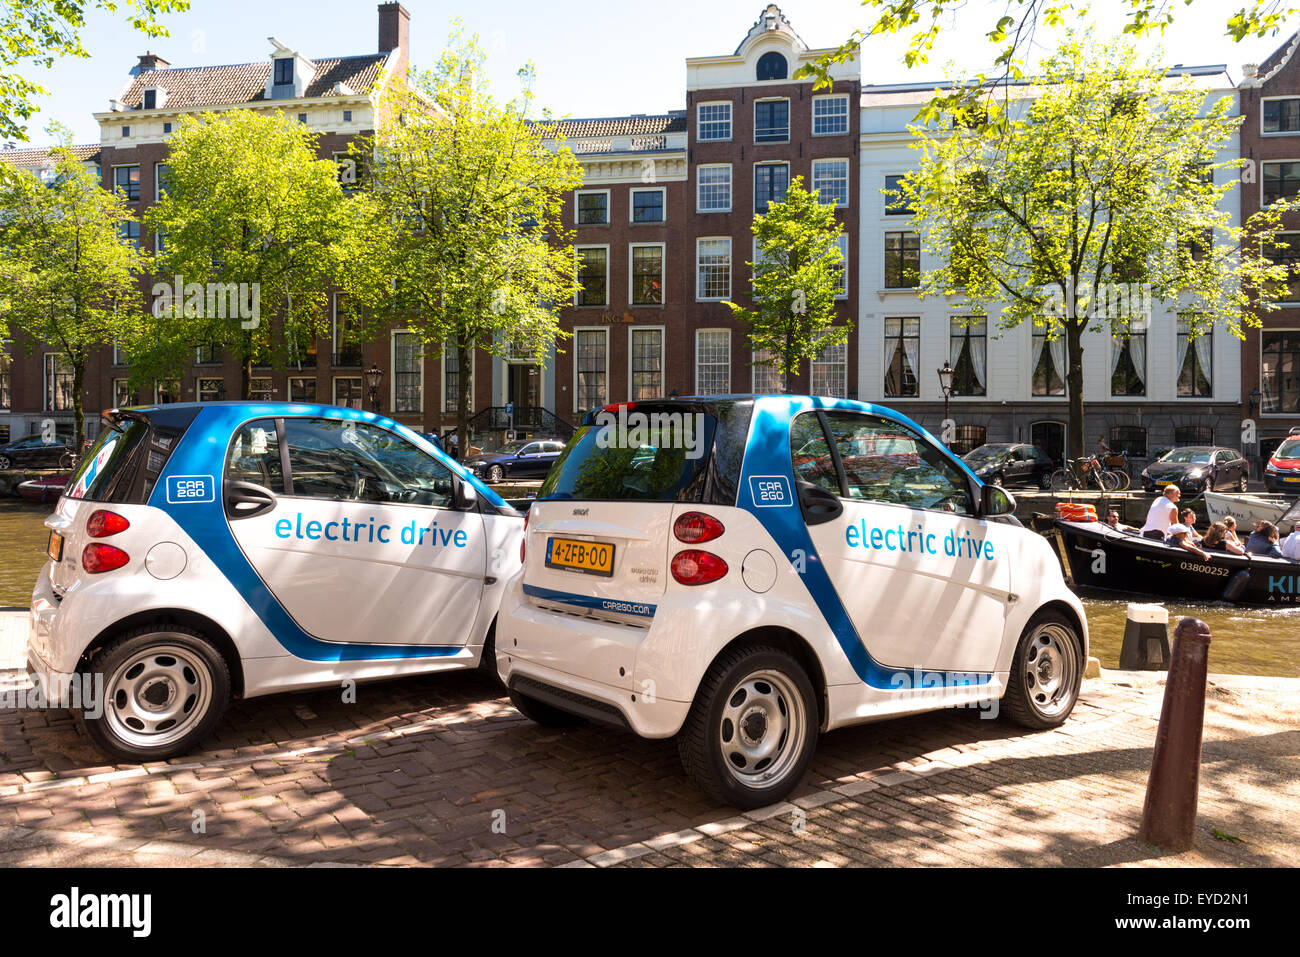 Electric Rental Cars In Amsterdam Where The Eco